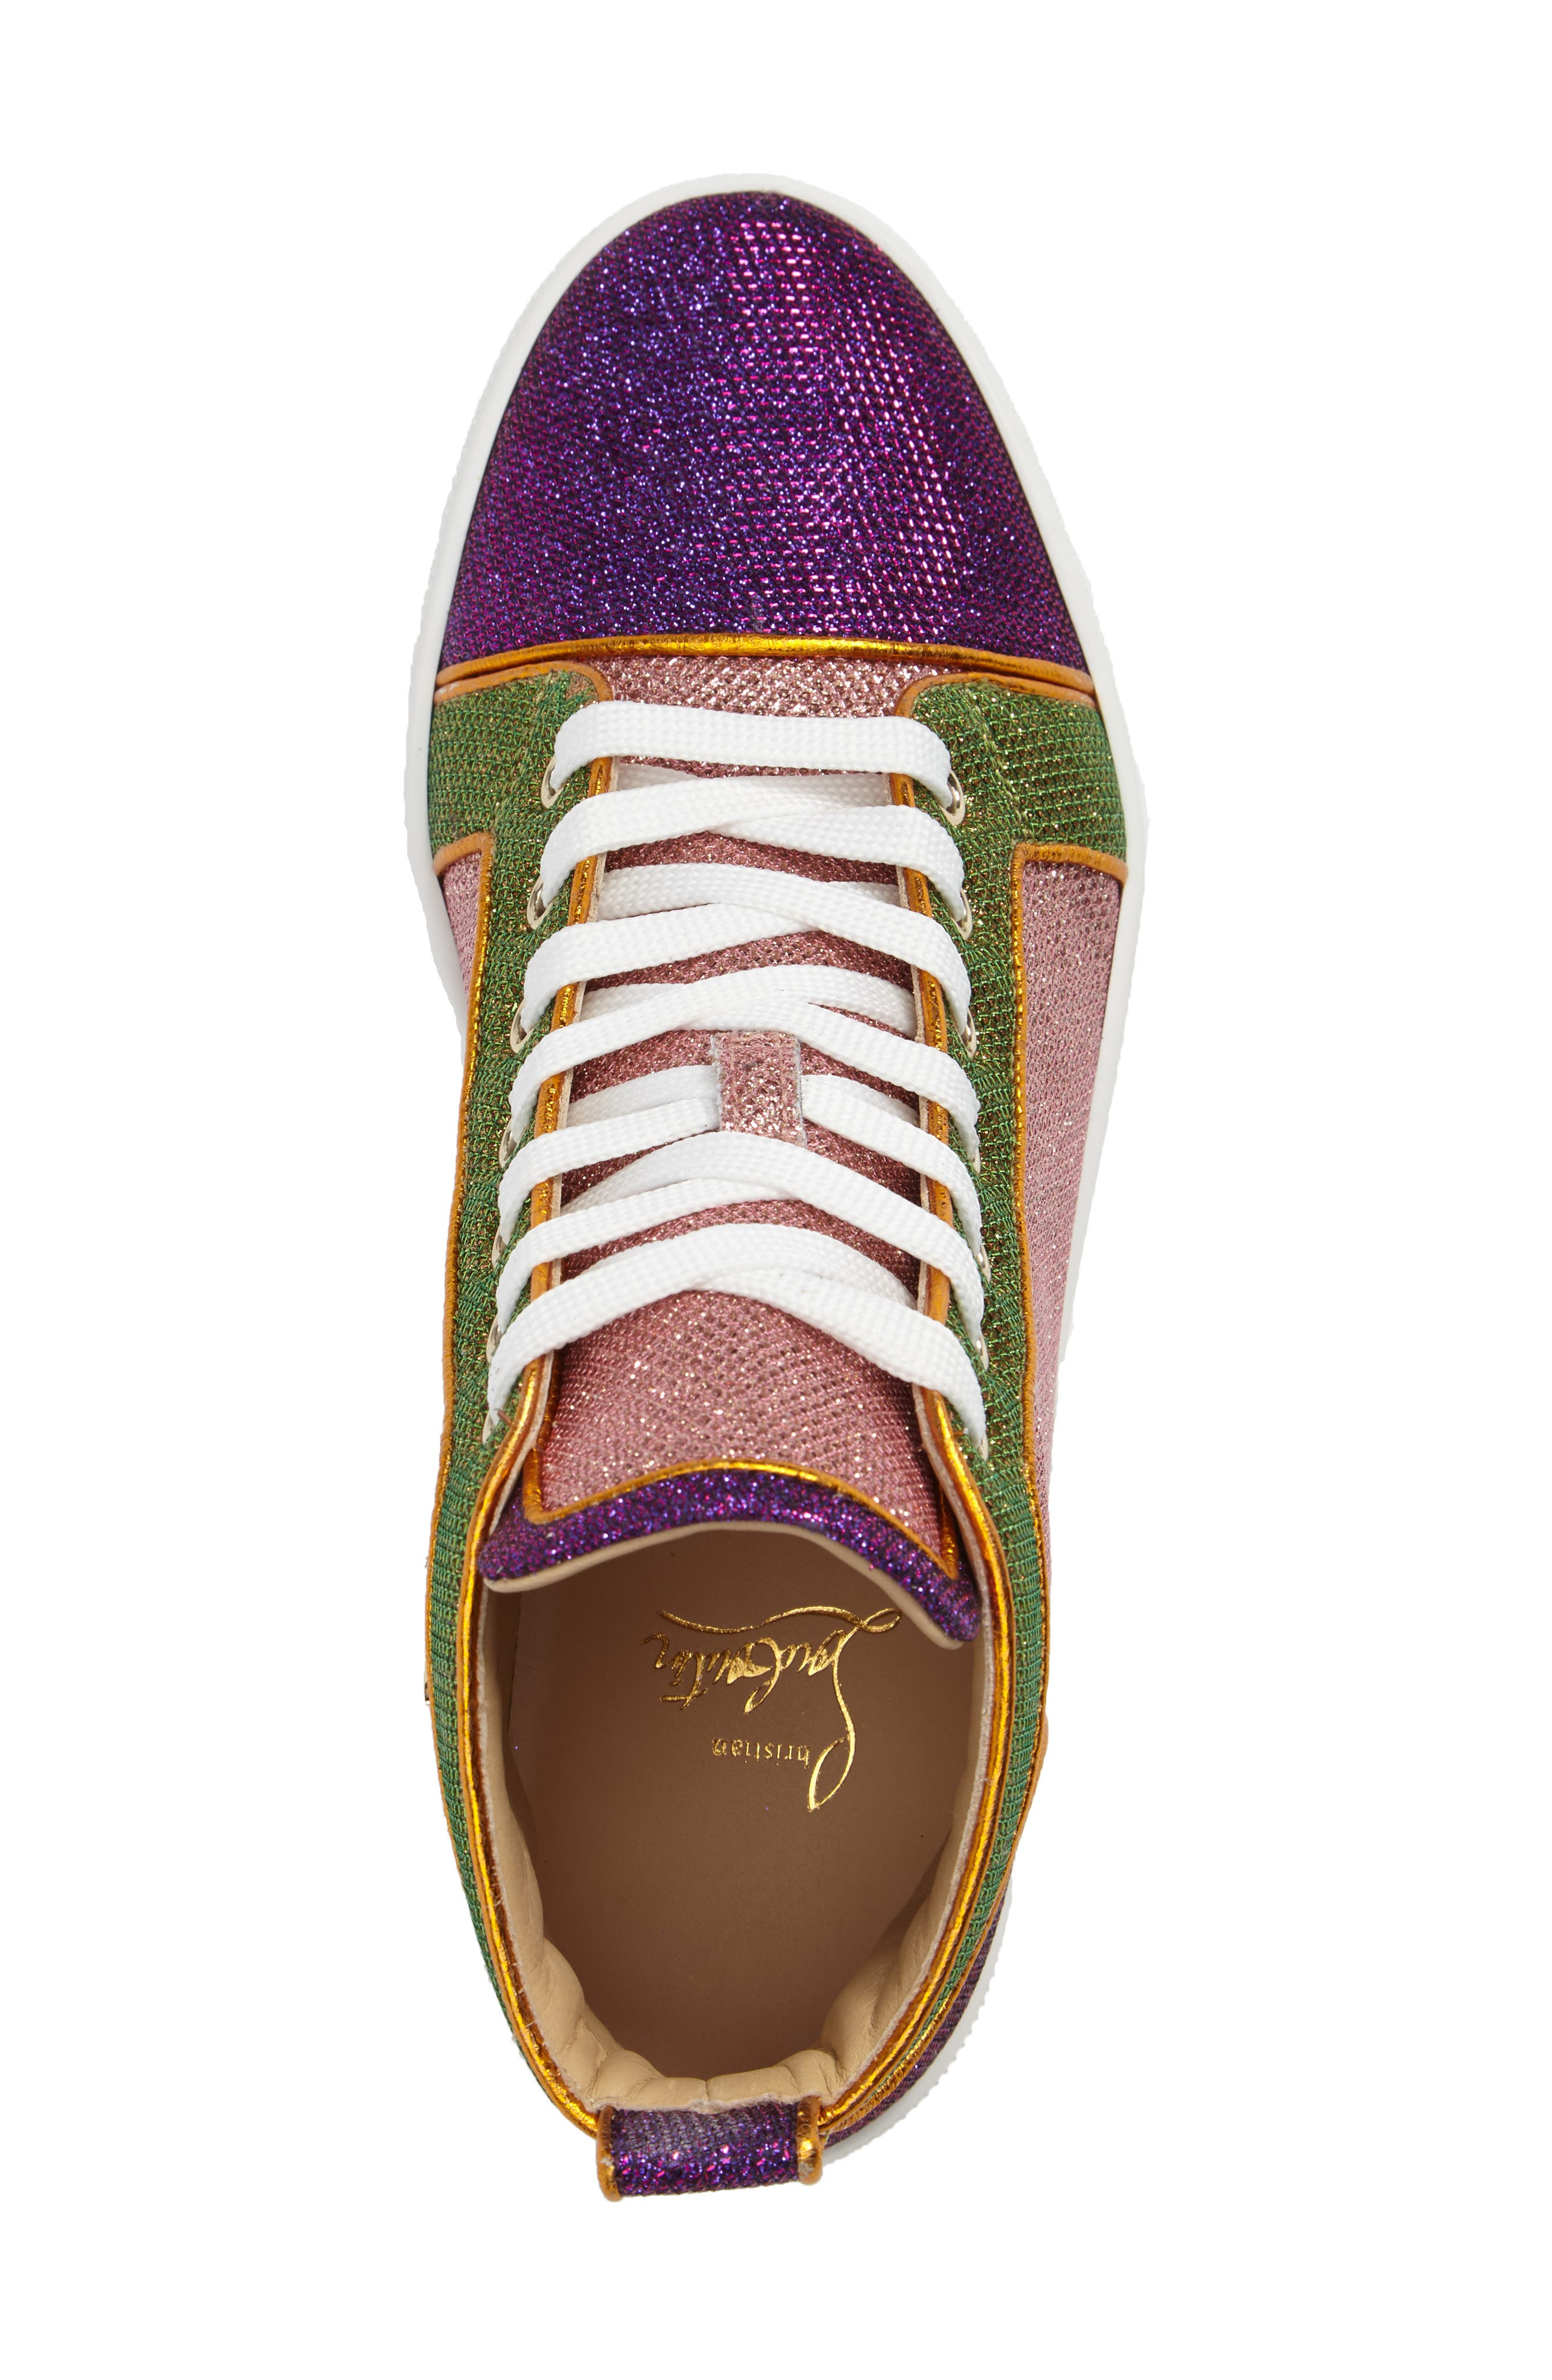 Bip Bip High Top Sneaker,                             Alternate thumbnail 16, color,